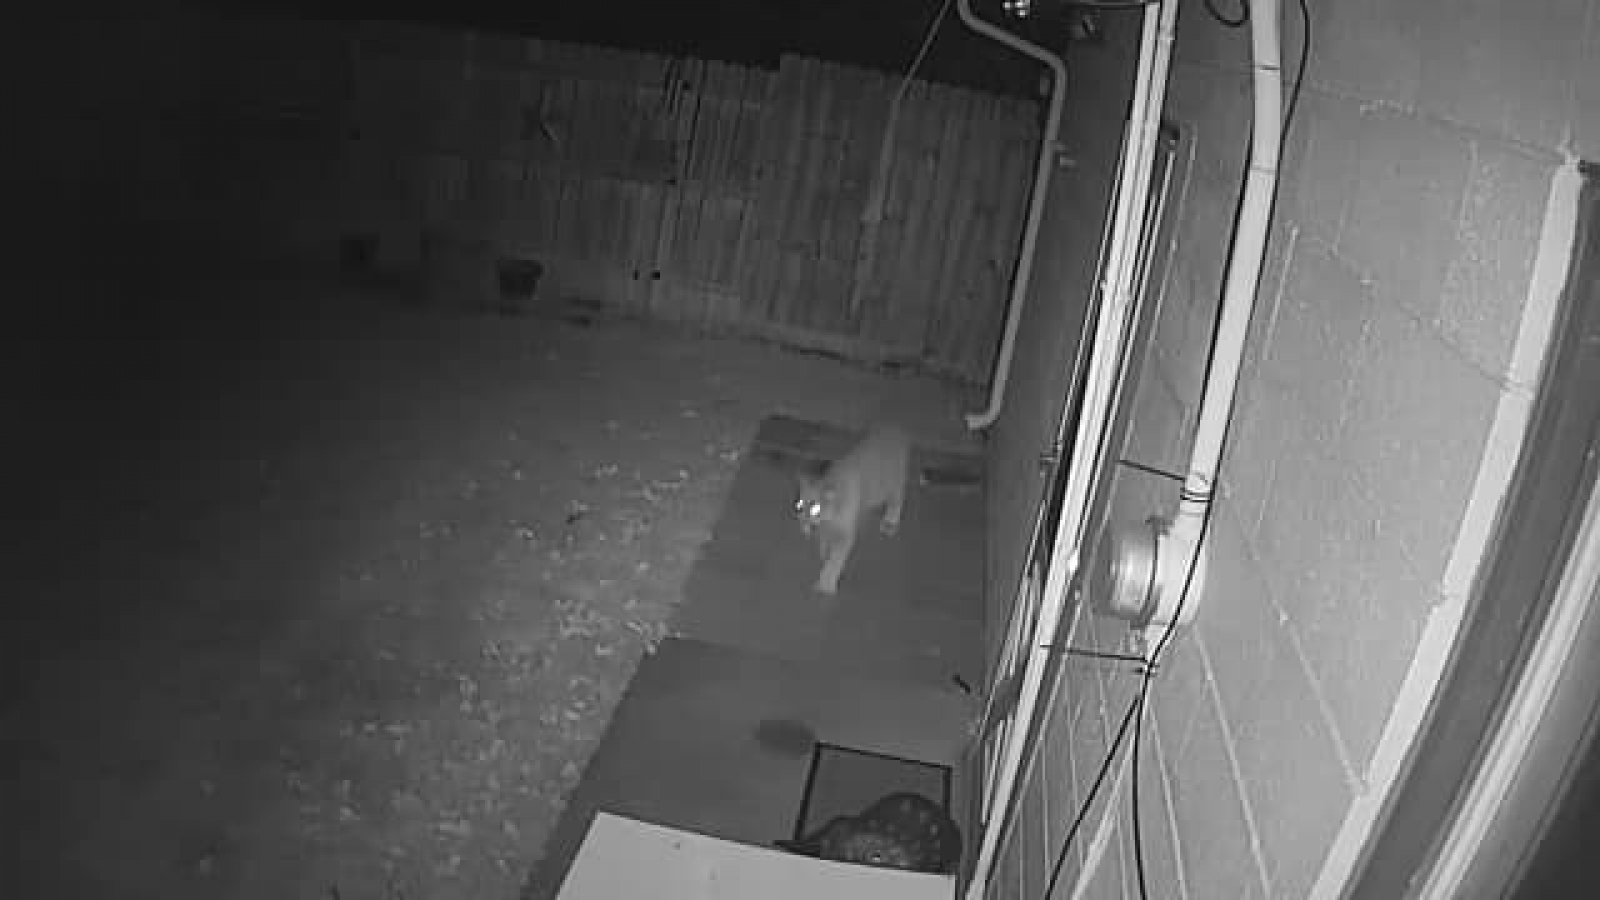 A home security camera belonging to a Gordon resident captured footage of a mountain lion in their backyard early Sunday and Monday mornings. On Monday evening, the cat was trapped by another Gordon resident, and shot by authorities.